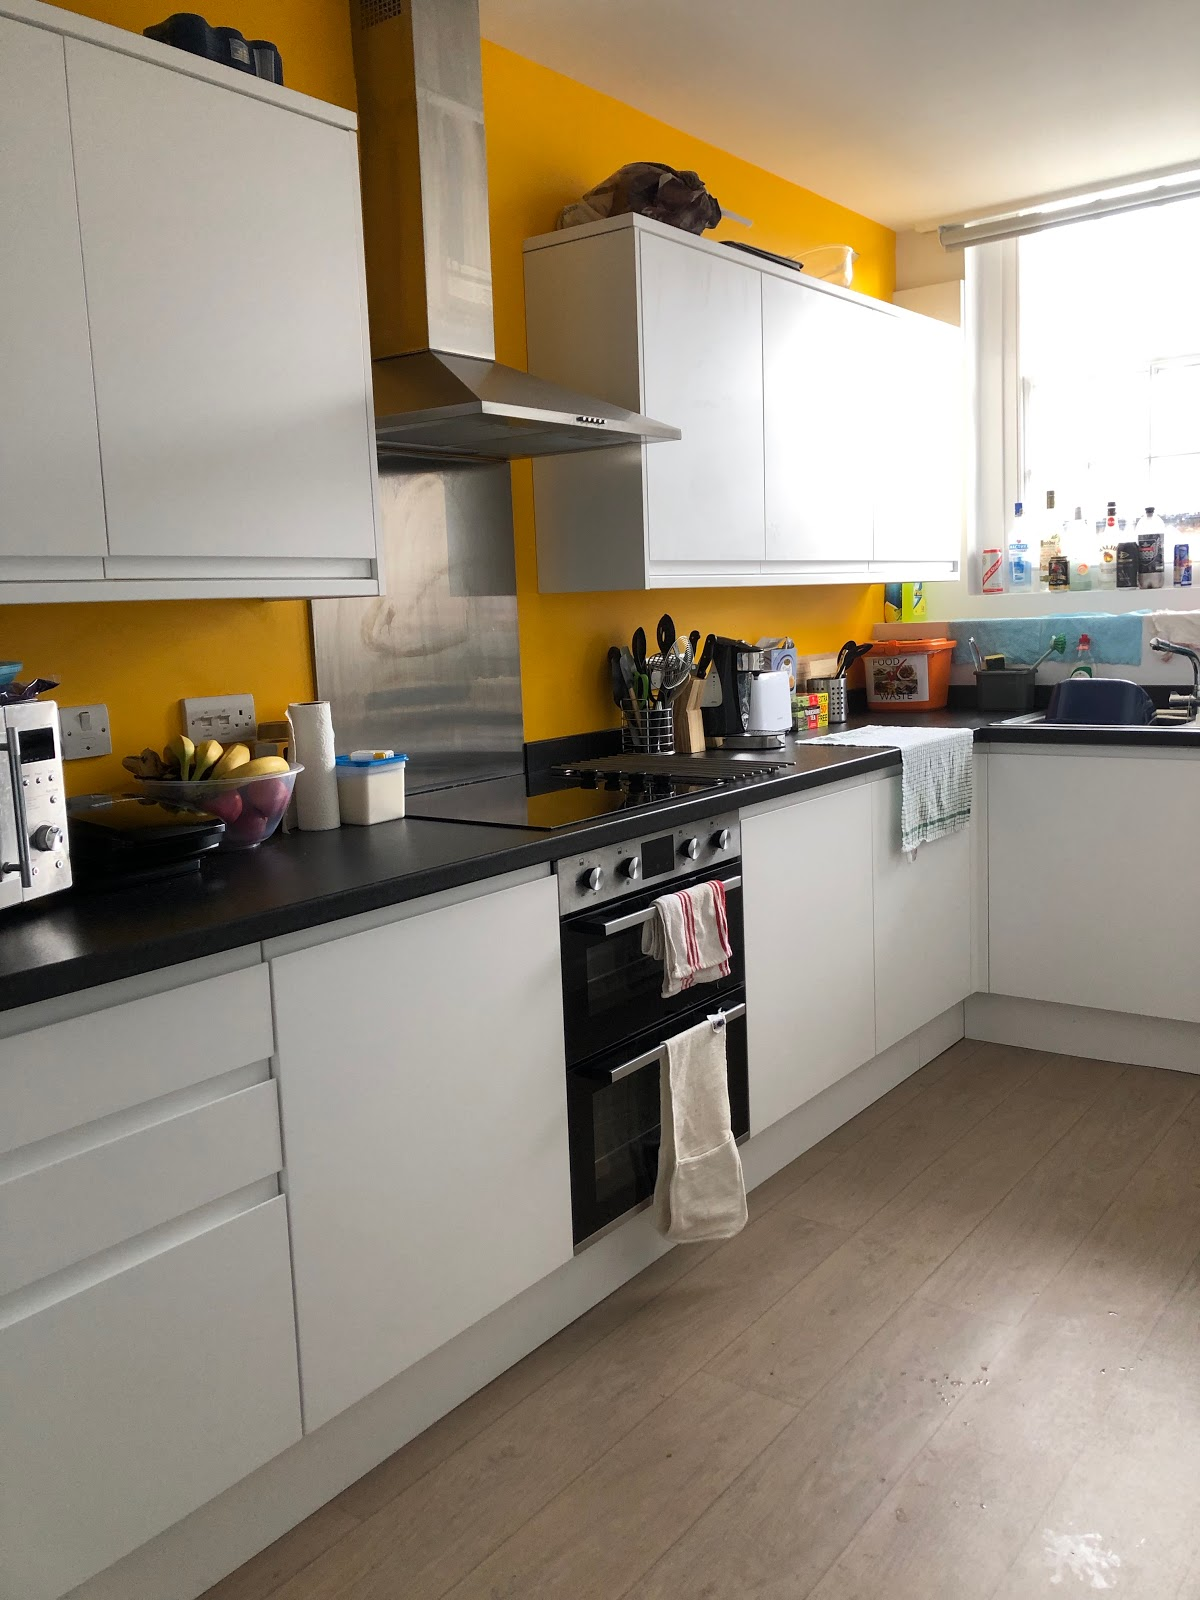 More cupboards, sink, kitchen surfaces